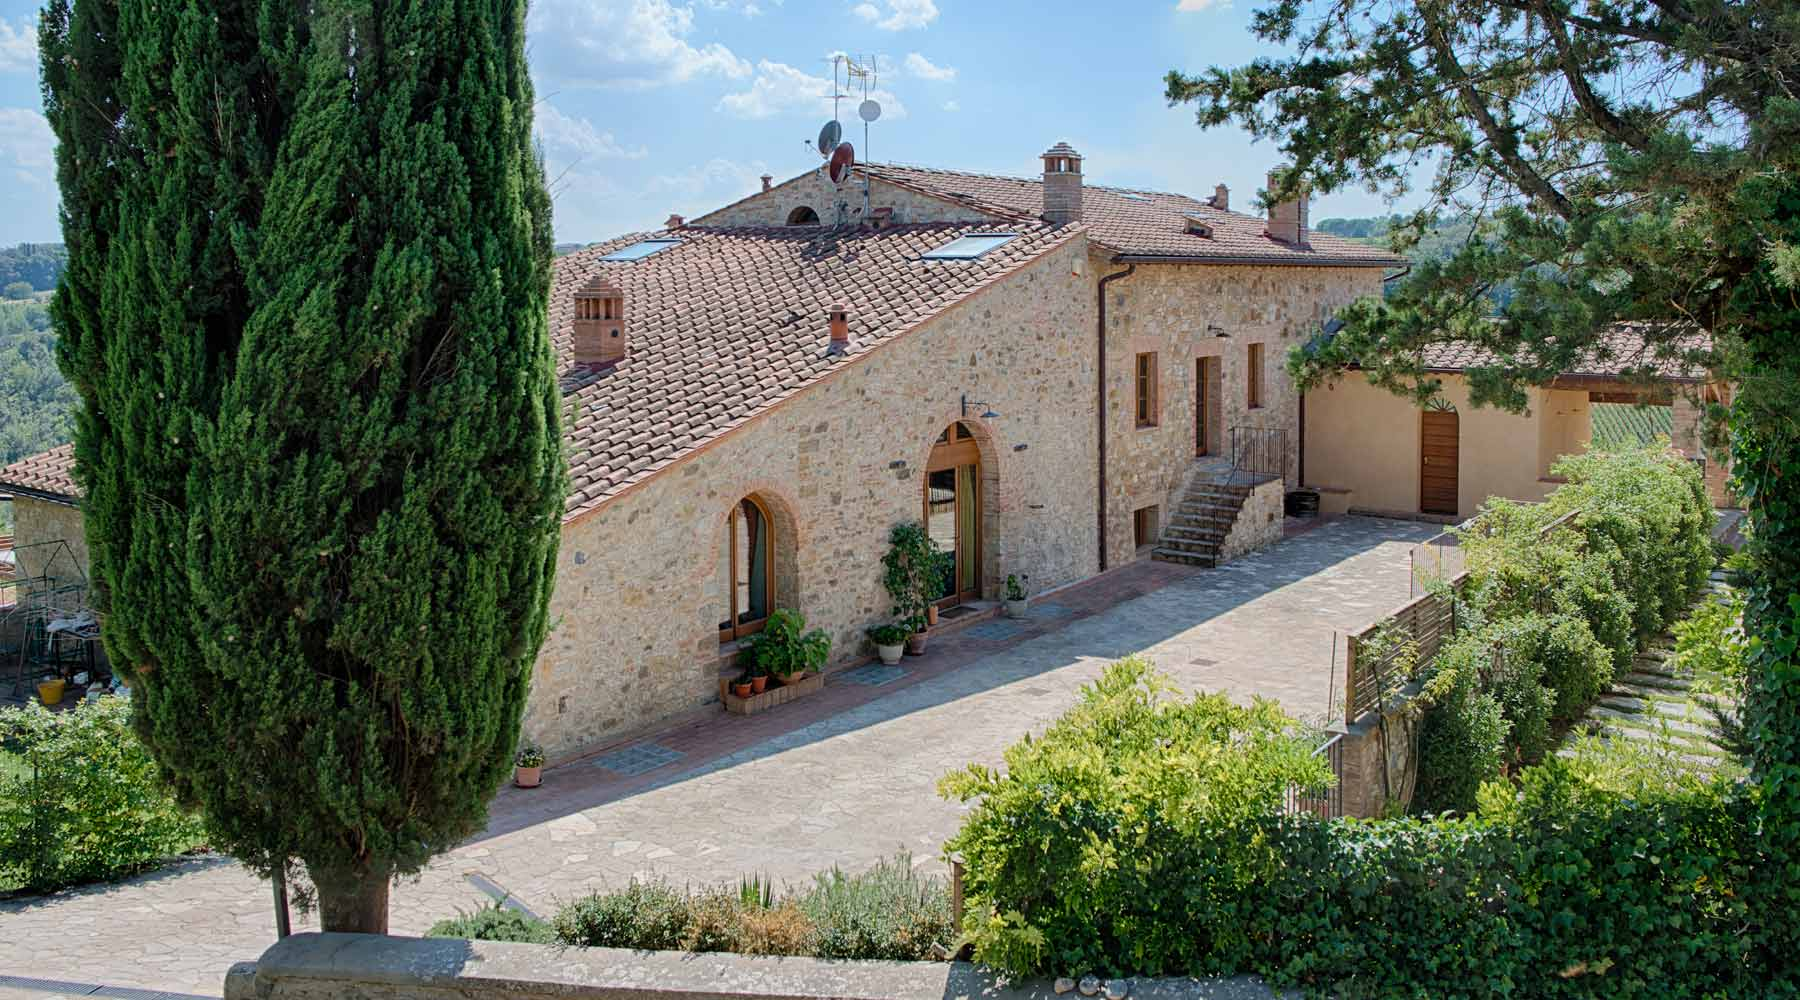 bed and breakfast in podere toscano ristrutturato